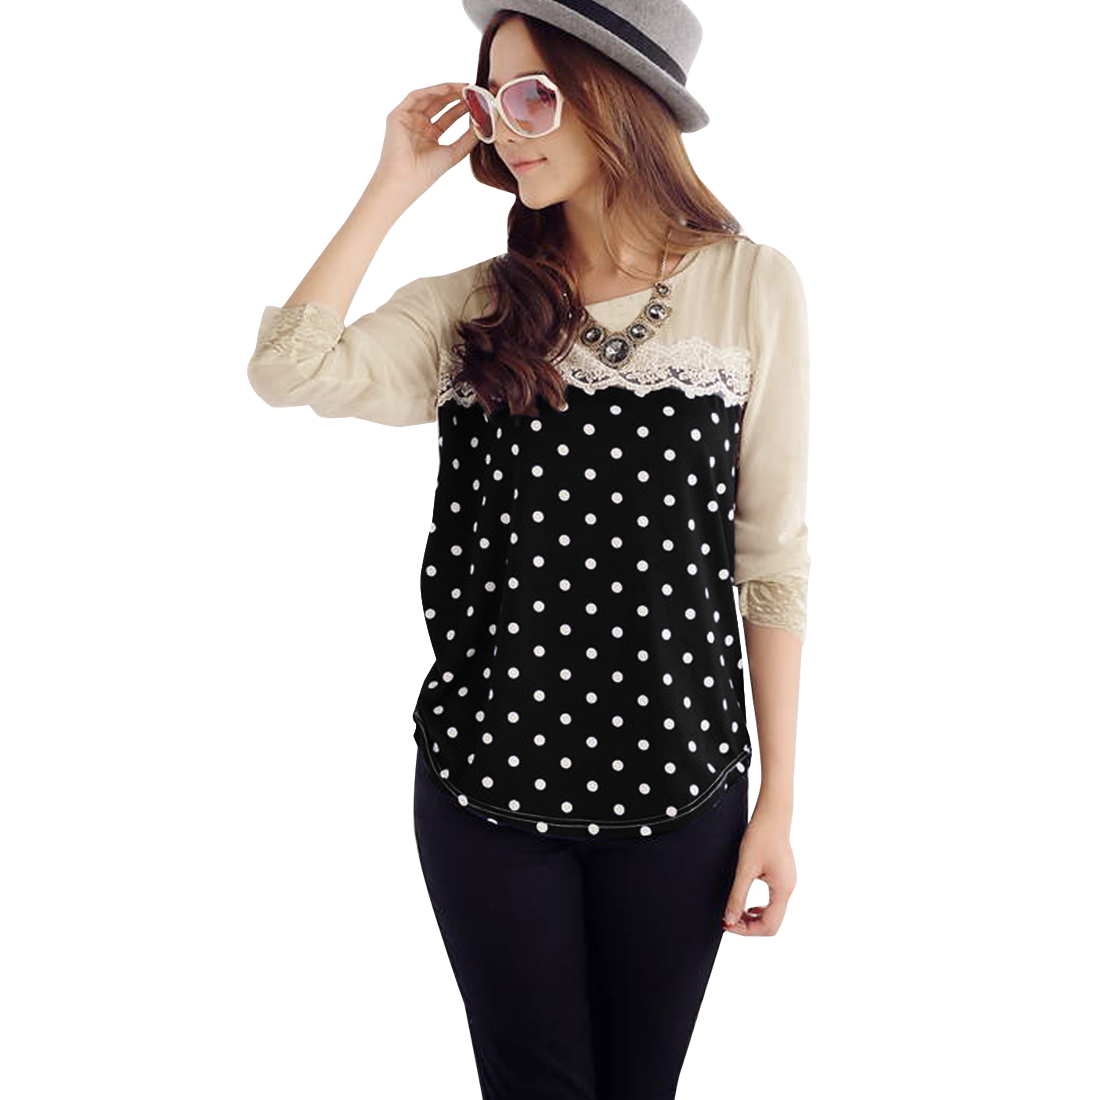 Woman Chic Dots Pattern Crochet Patchwork Front Black Beige Top Shirt XS